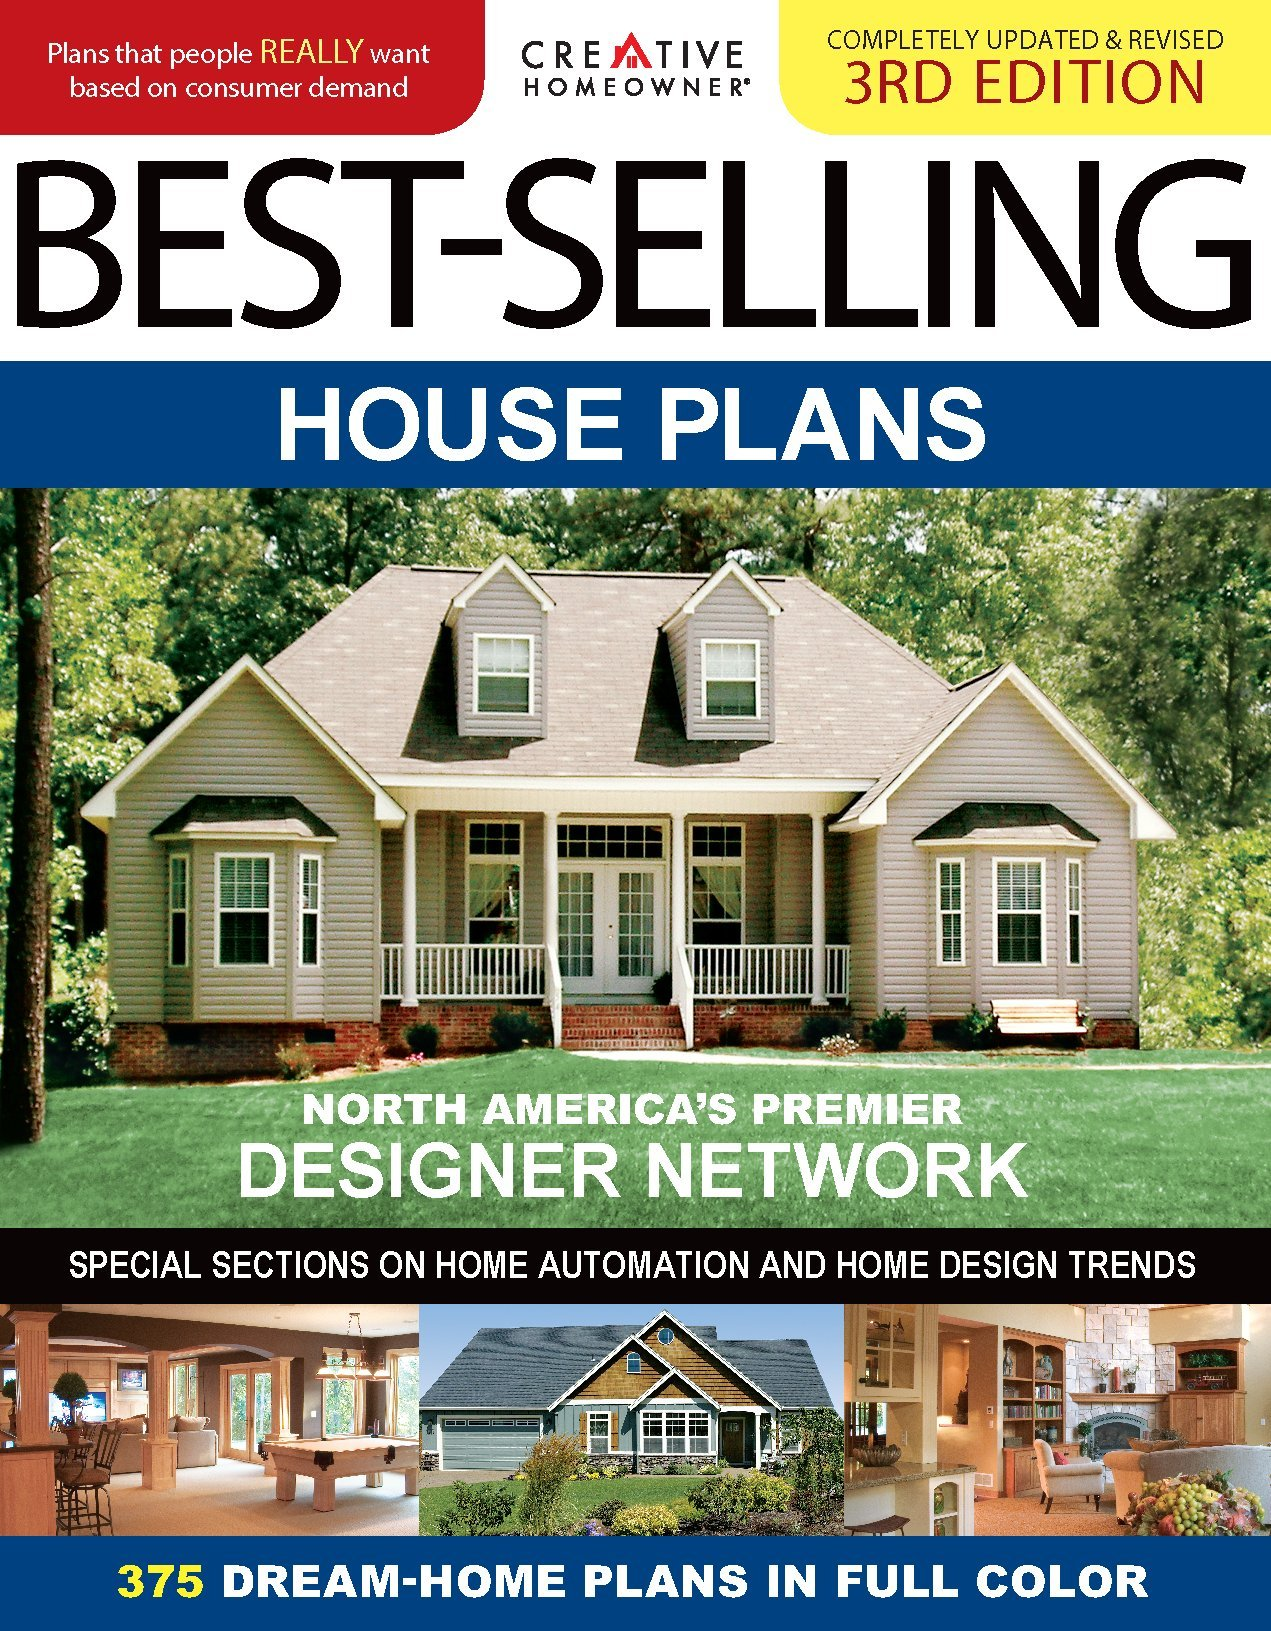 Best Selling House Plans Completely Updated Revised 3rd Edition